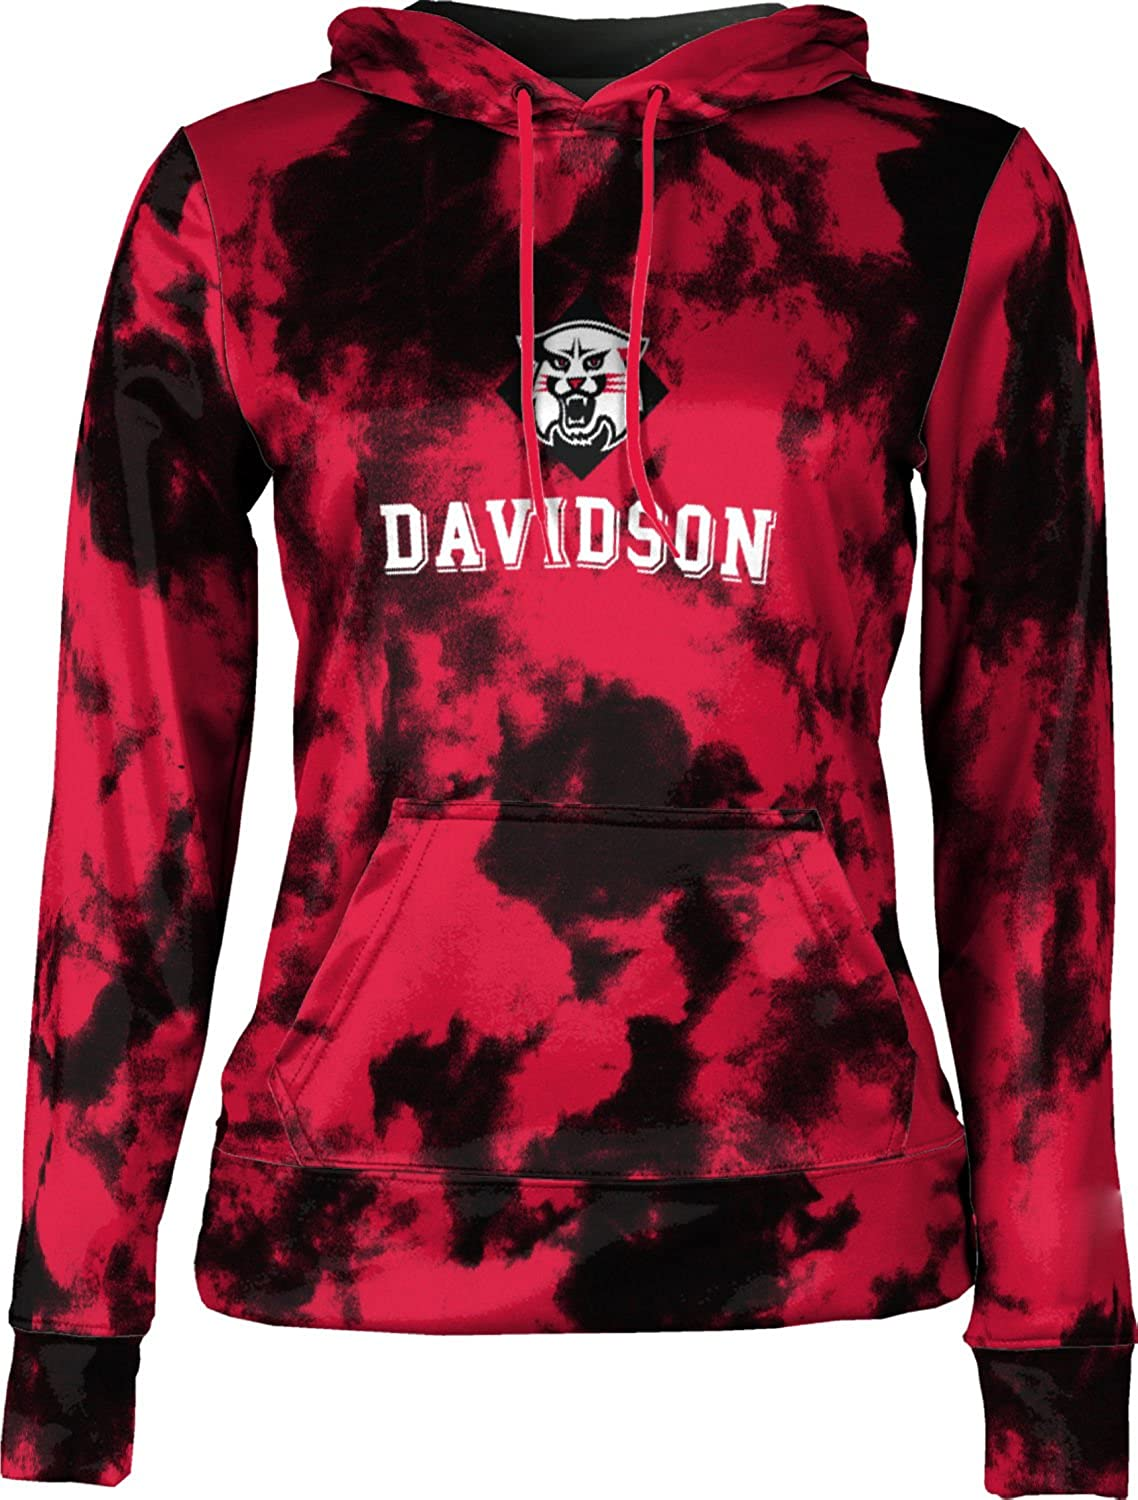 ProSphere Davidson College Girls Zipper Hoodie School Spirit Sweatshirt Grunge